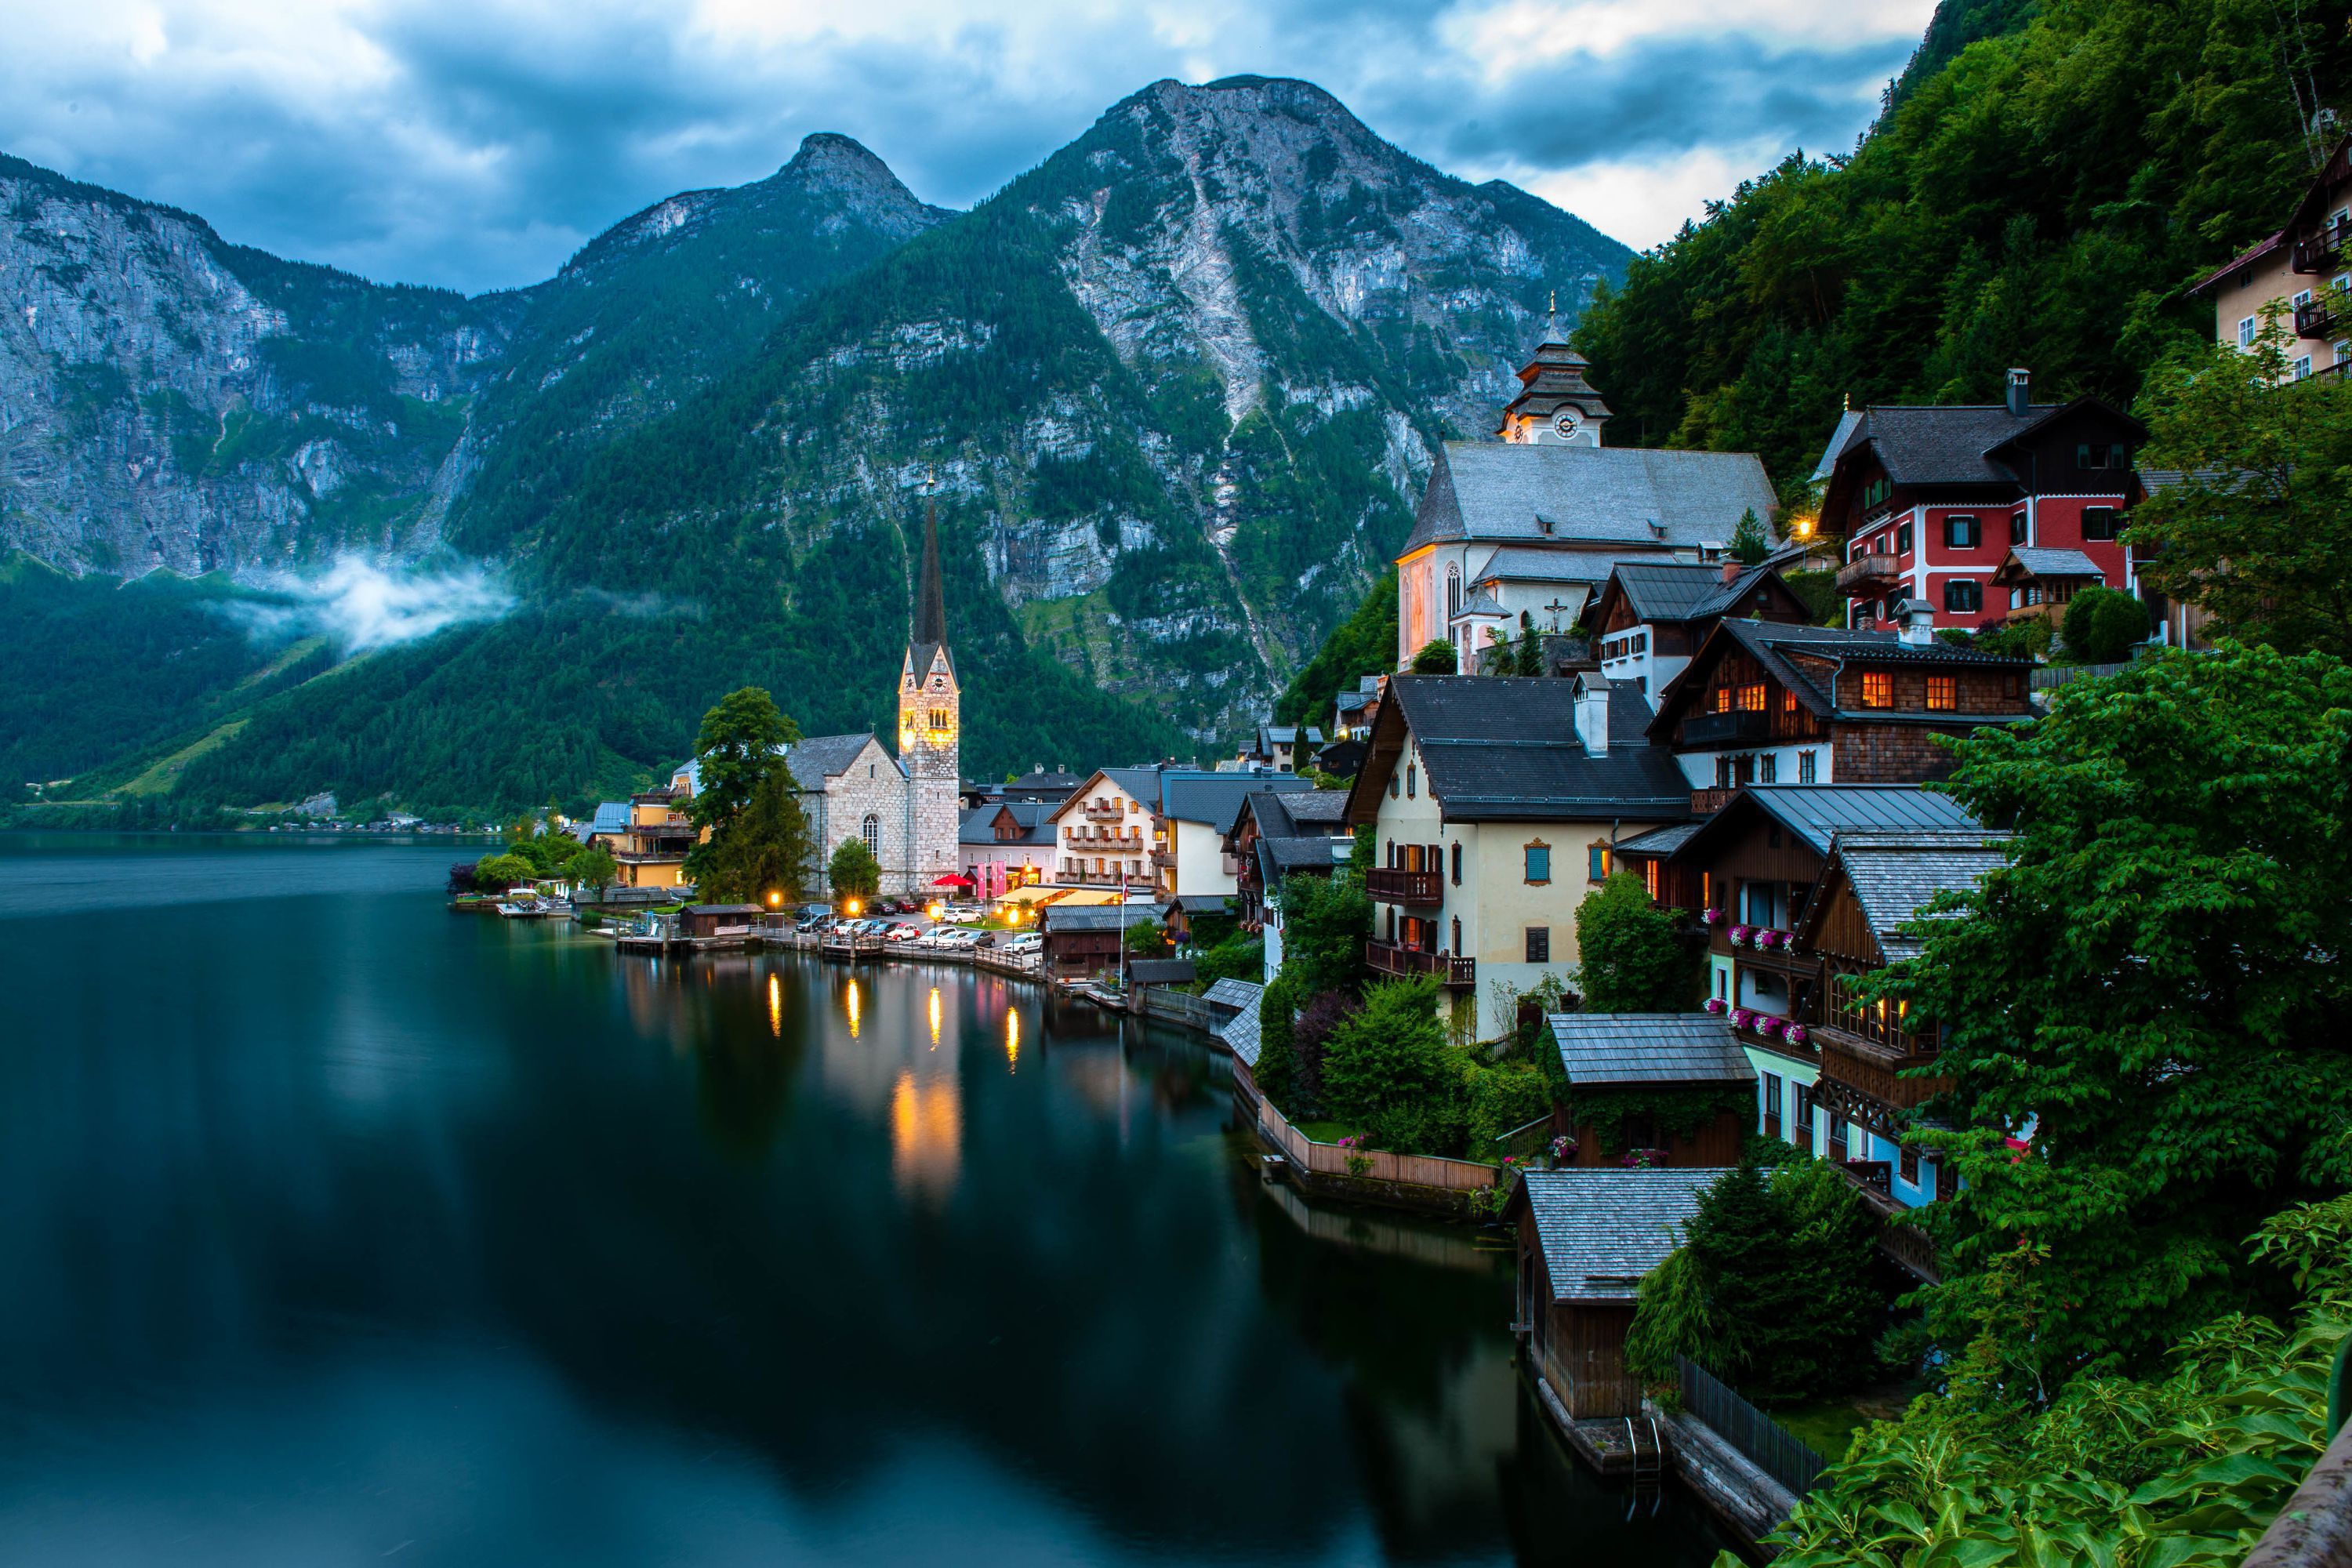 Popular Computer Wallpapers: Hallstatt Wallpapers Backgrounds